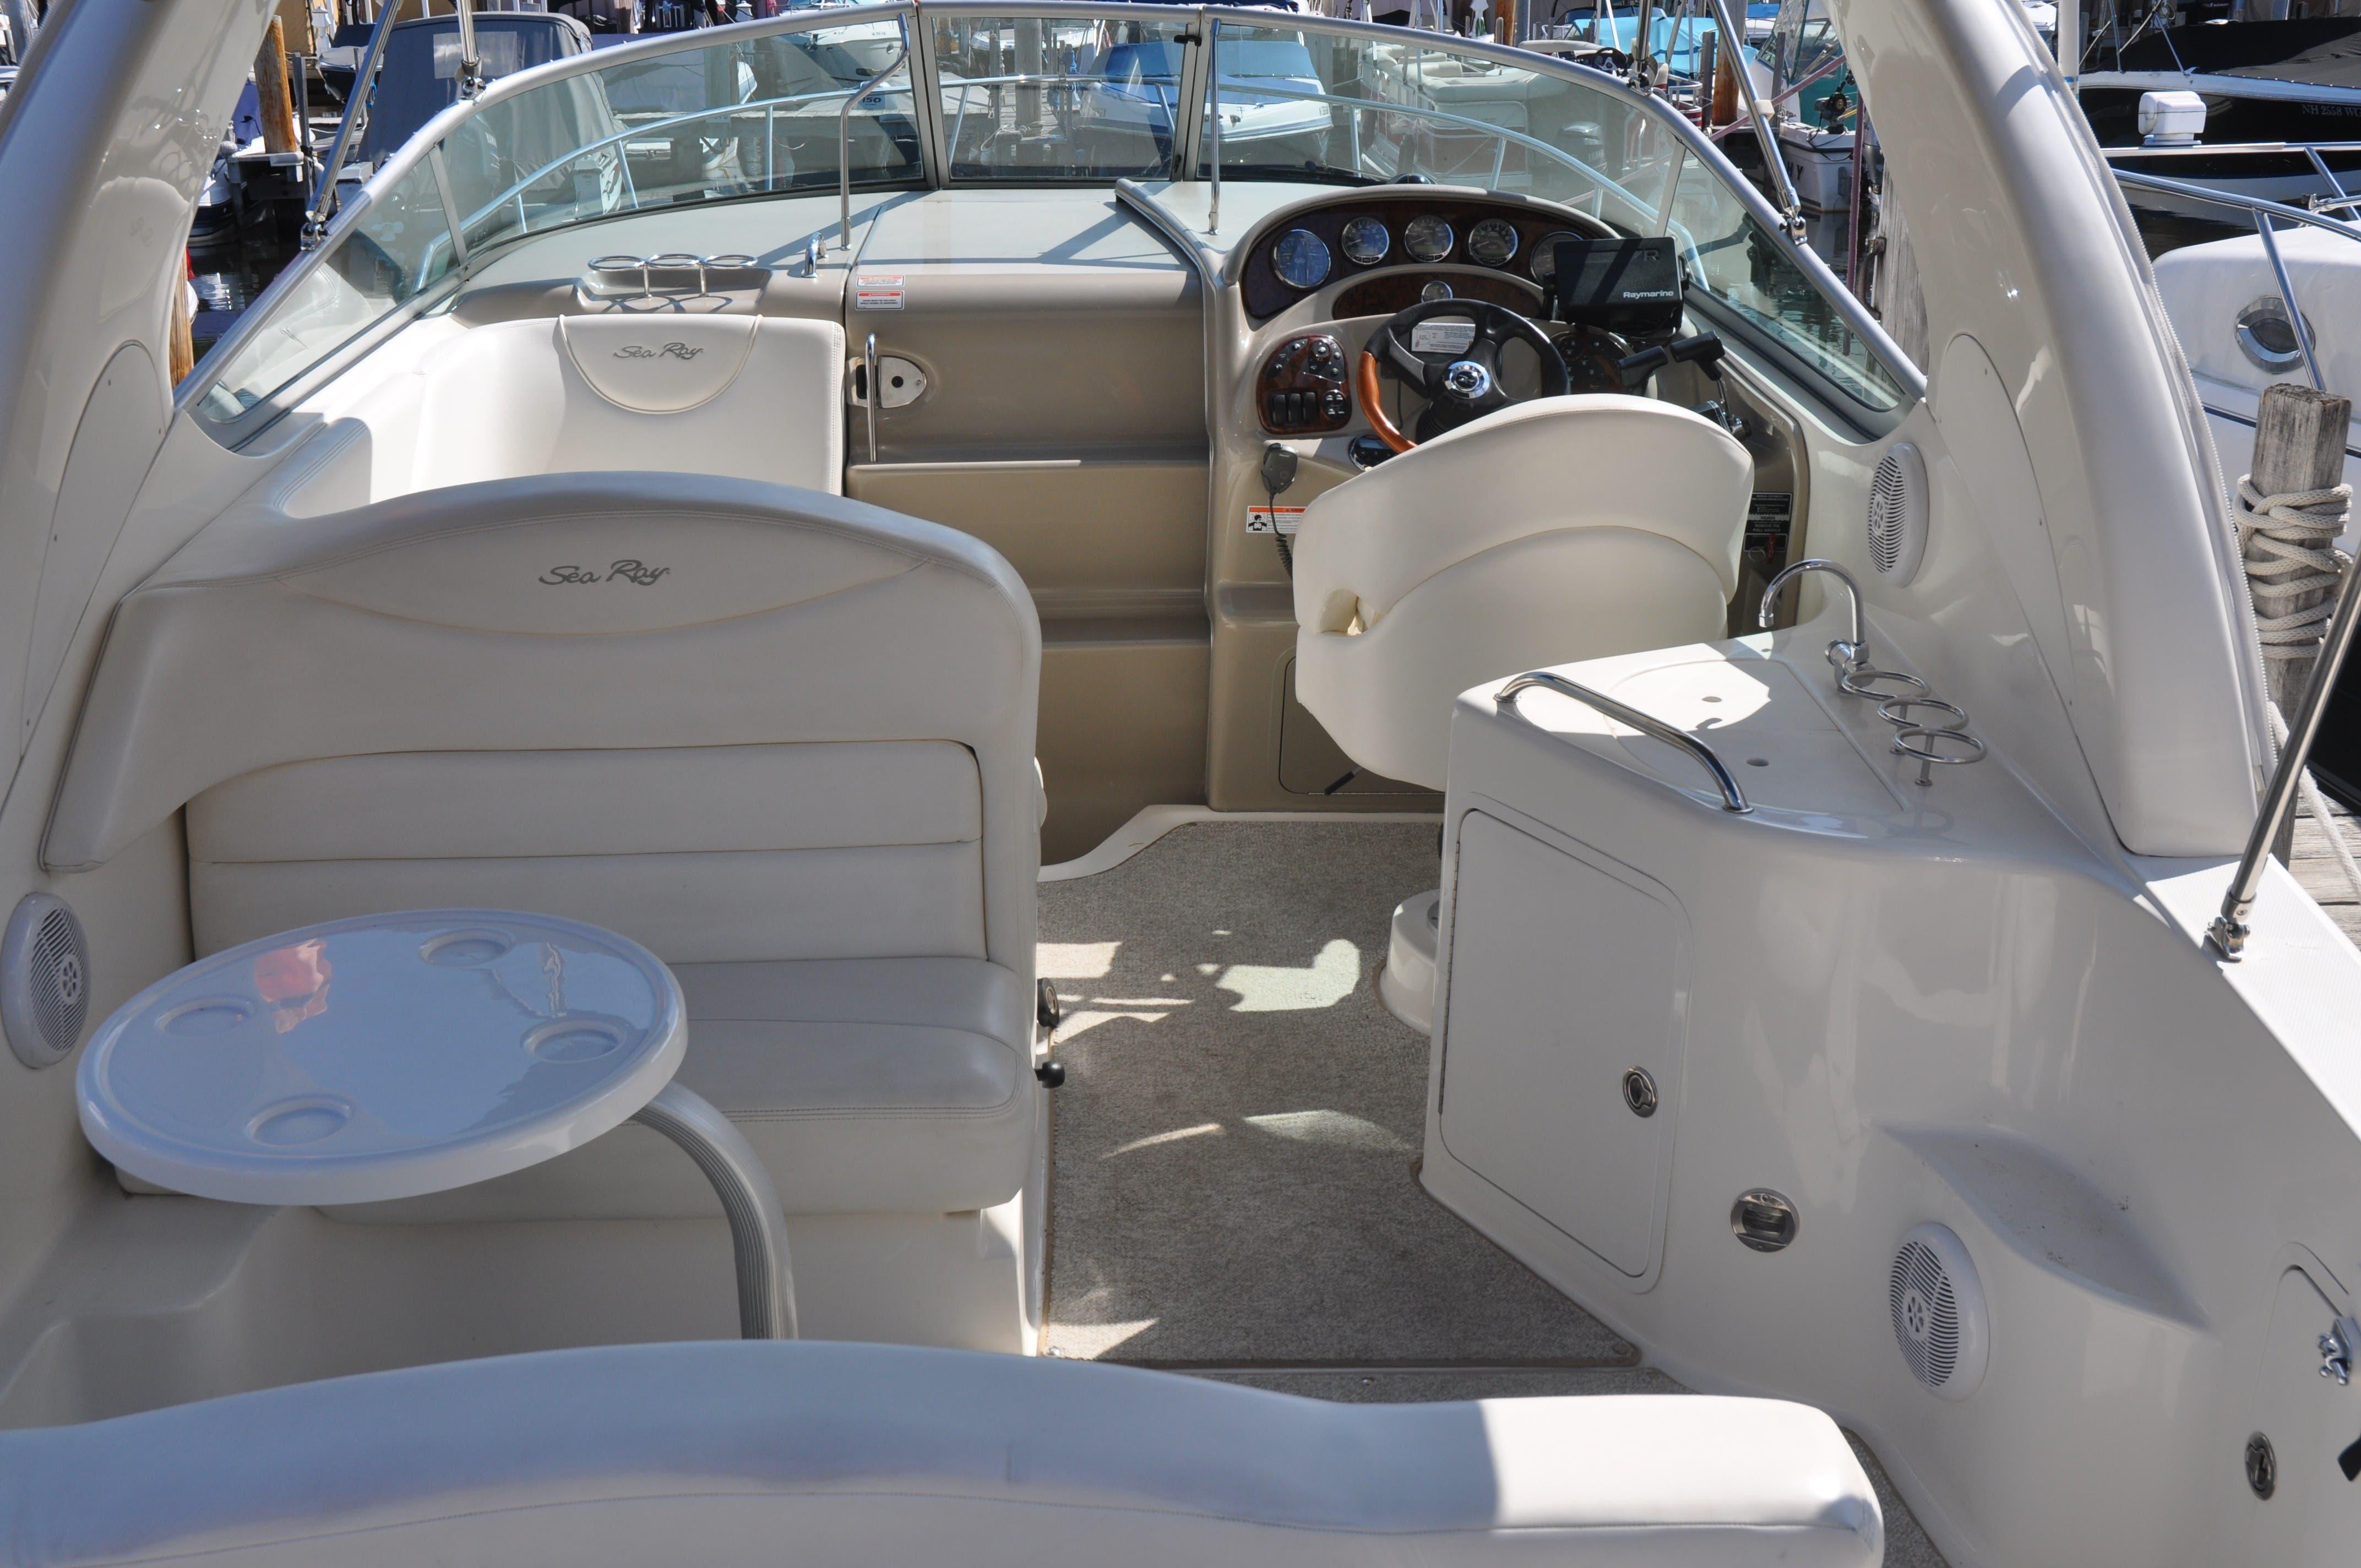 2006 Sea Ray boat for sale, model of the boat is 280 SUNDANCER & Image # 5 of 18